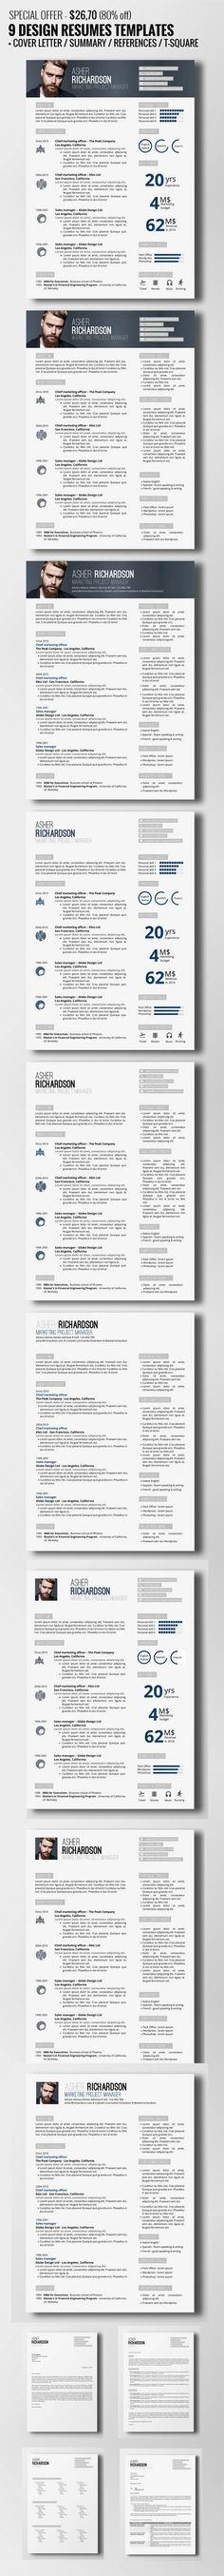 435 best Resume images on Pinterest Resume design, Design resume - fashion marketing resume